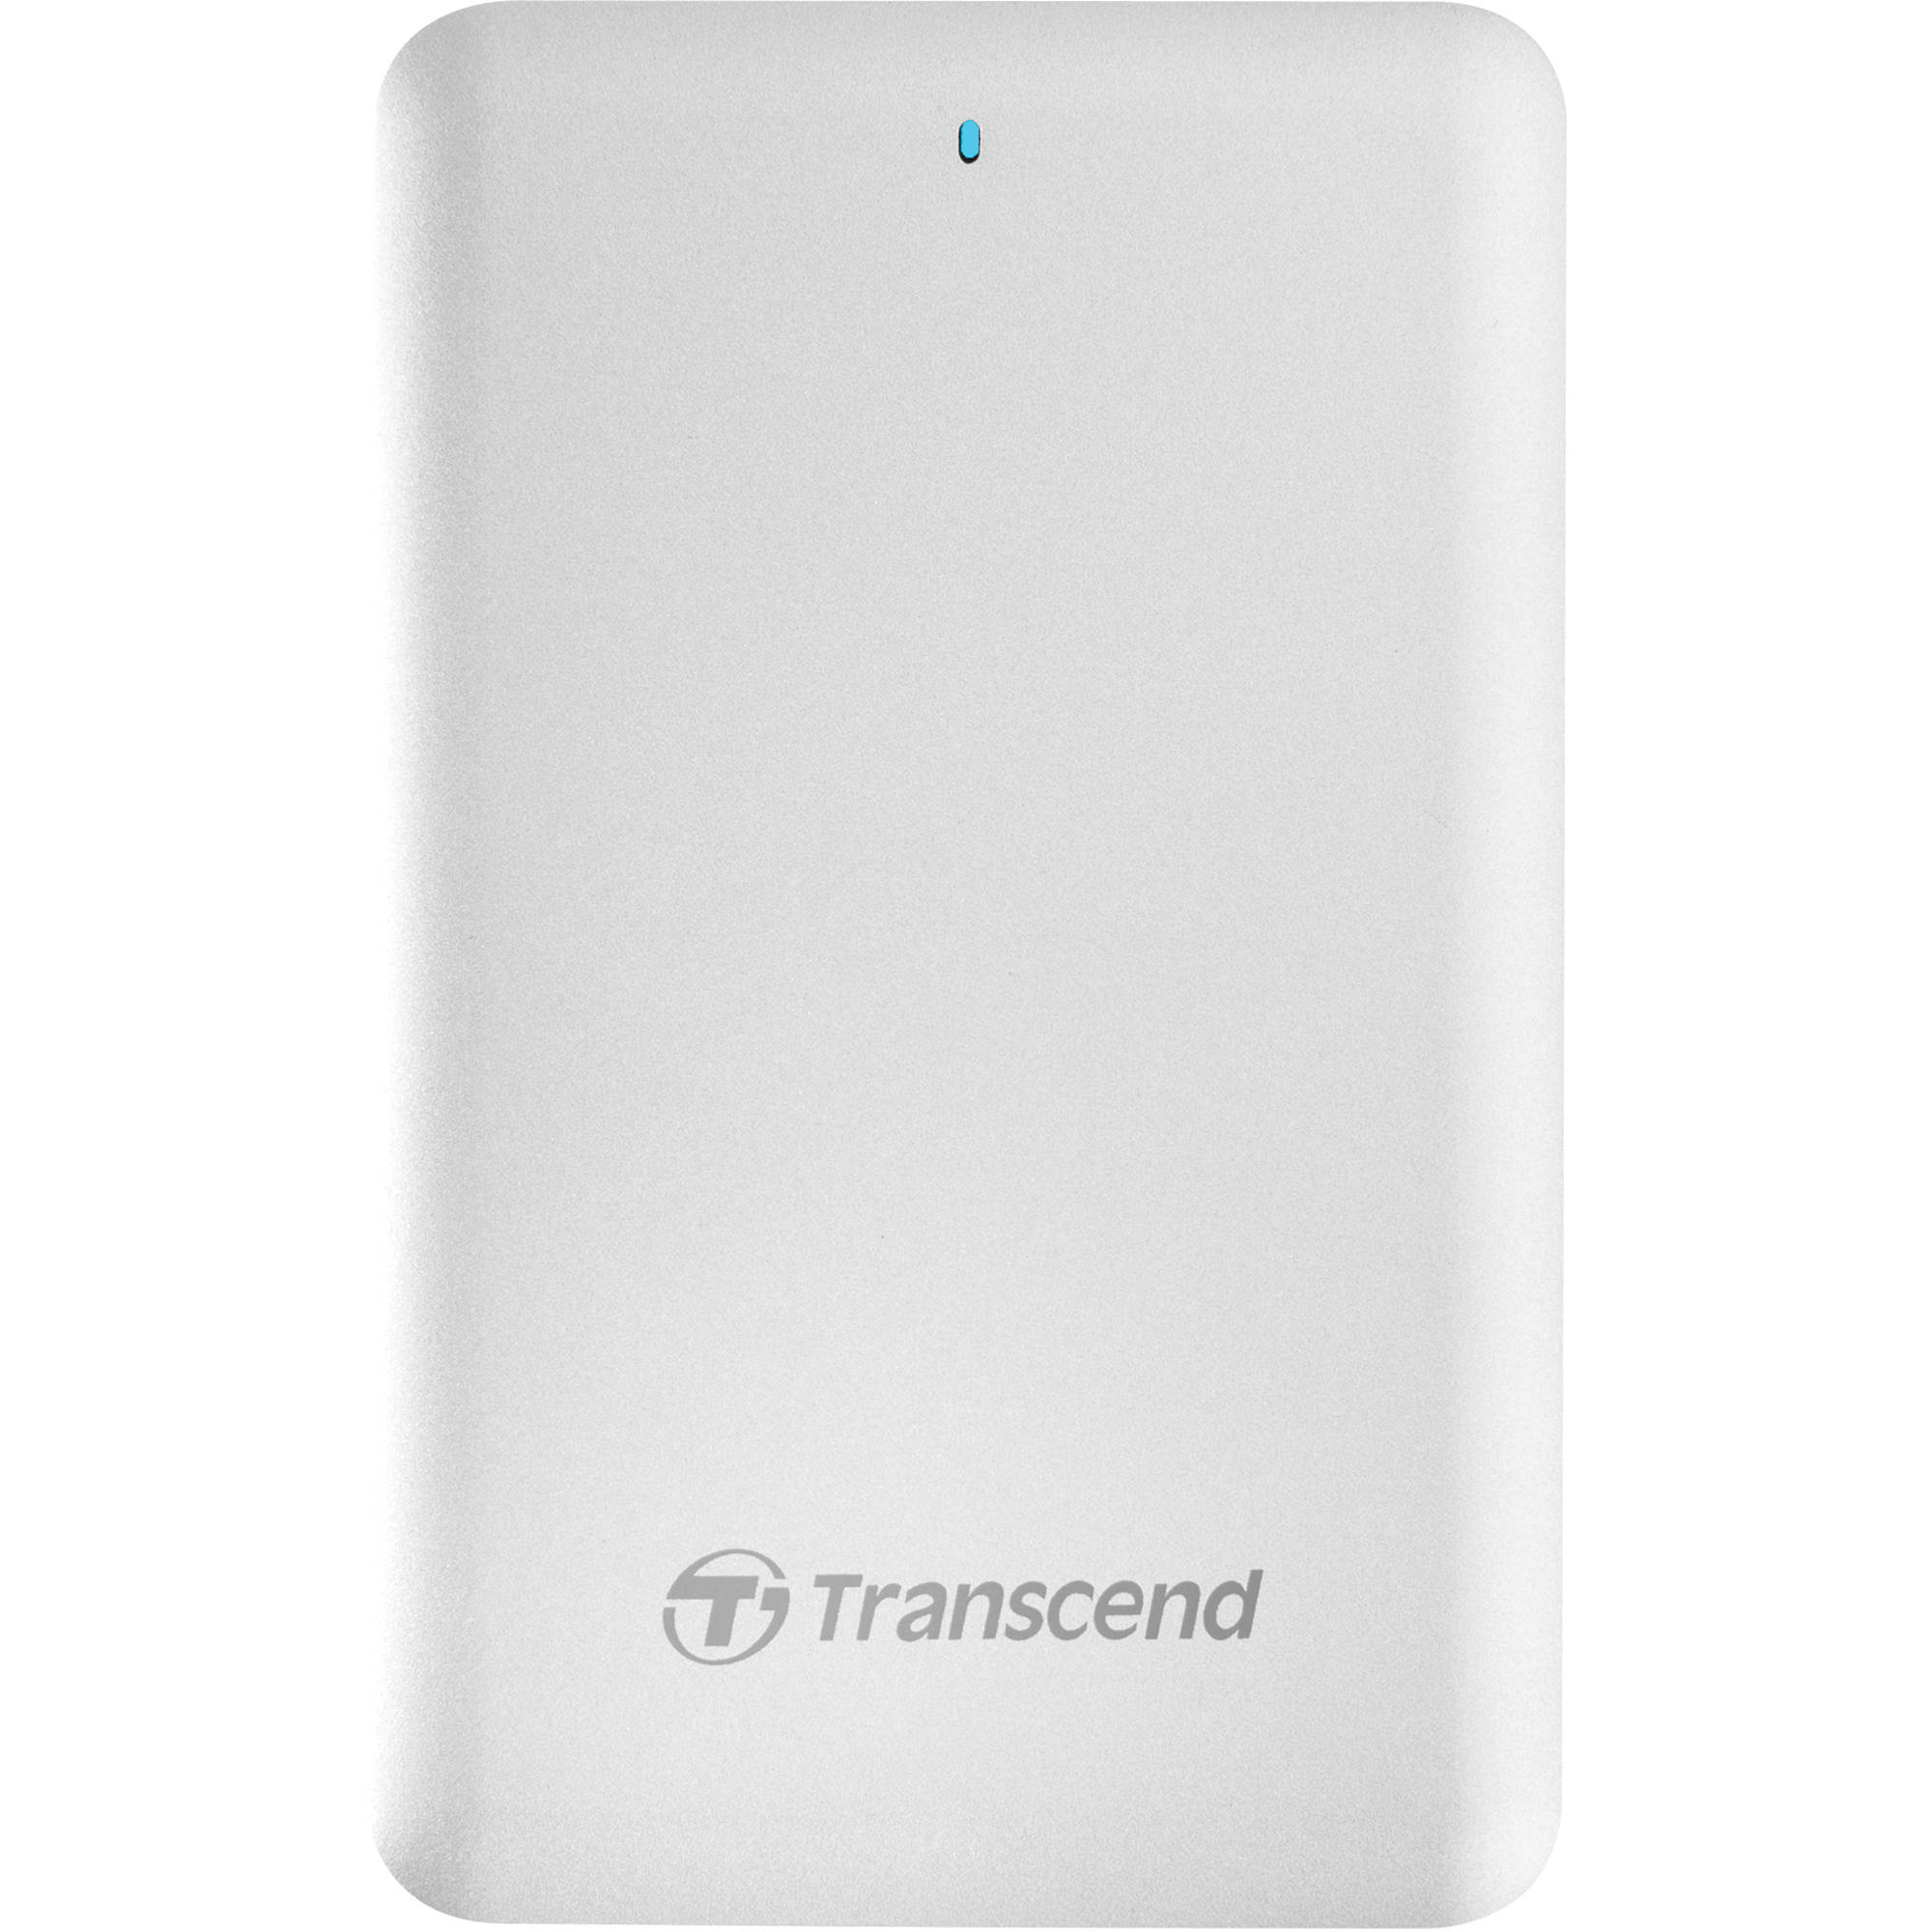 Transcend 256GB StoreJet 500 Portable Solid State Drive for Mac